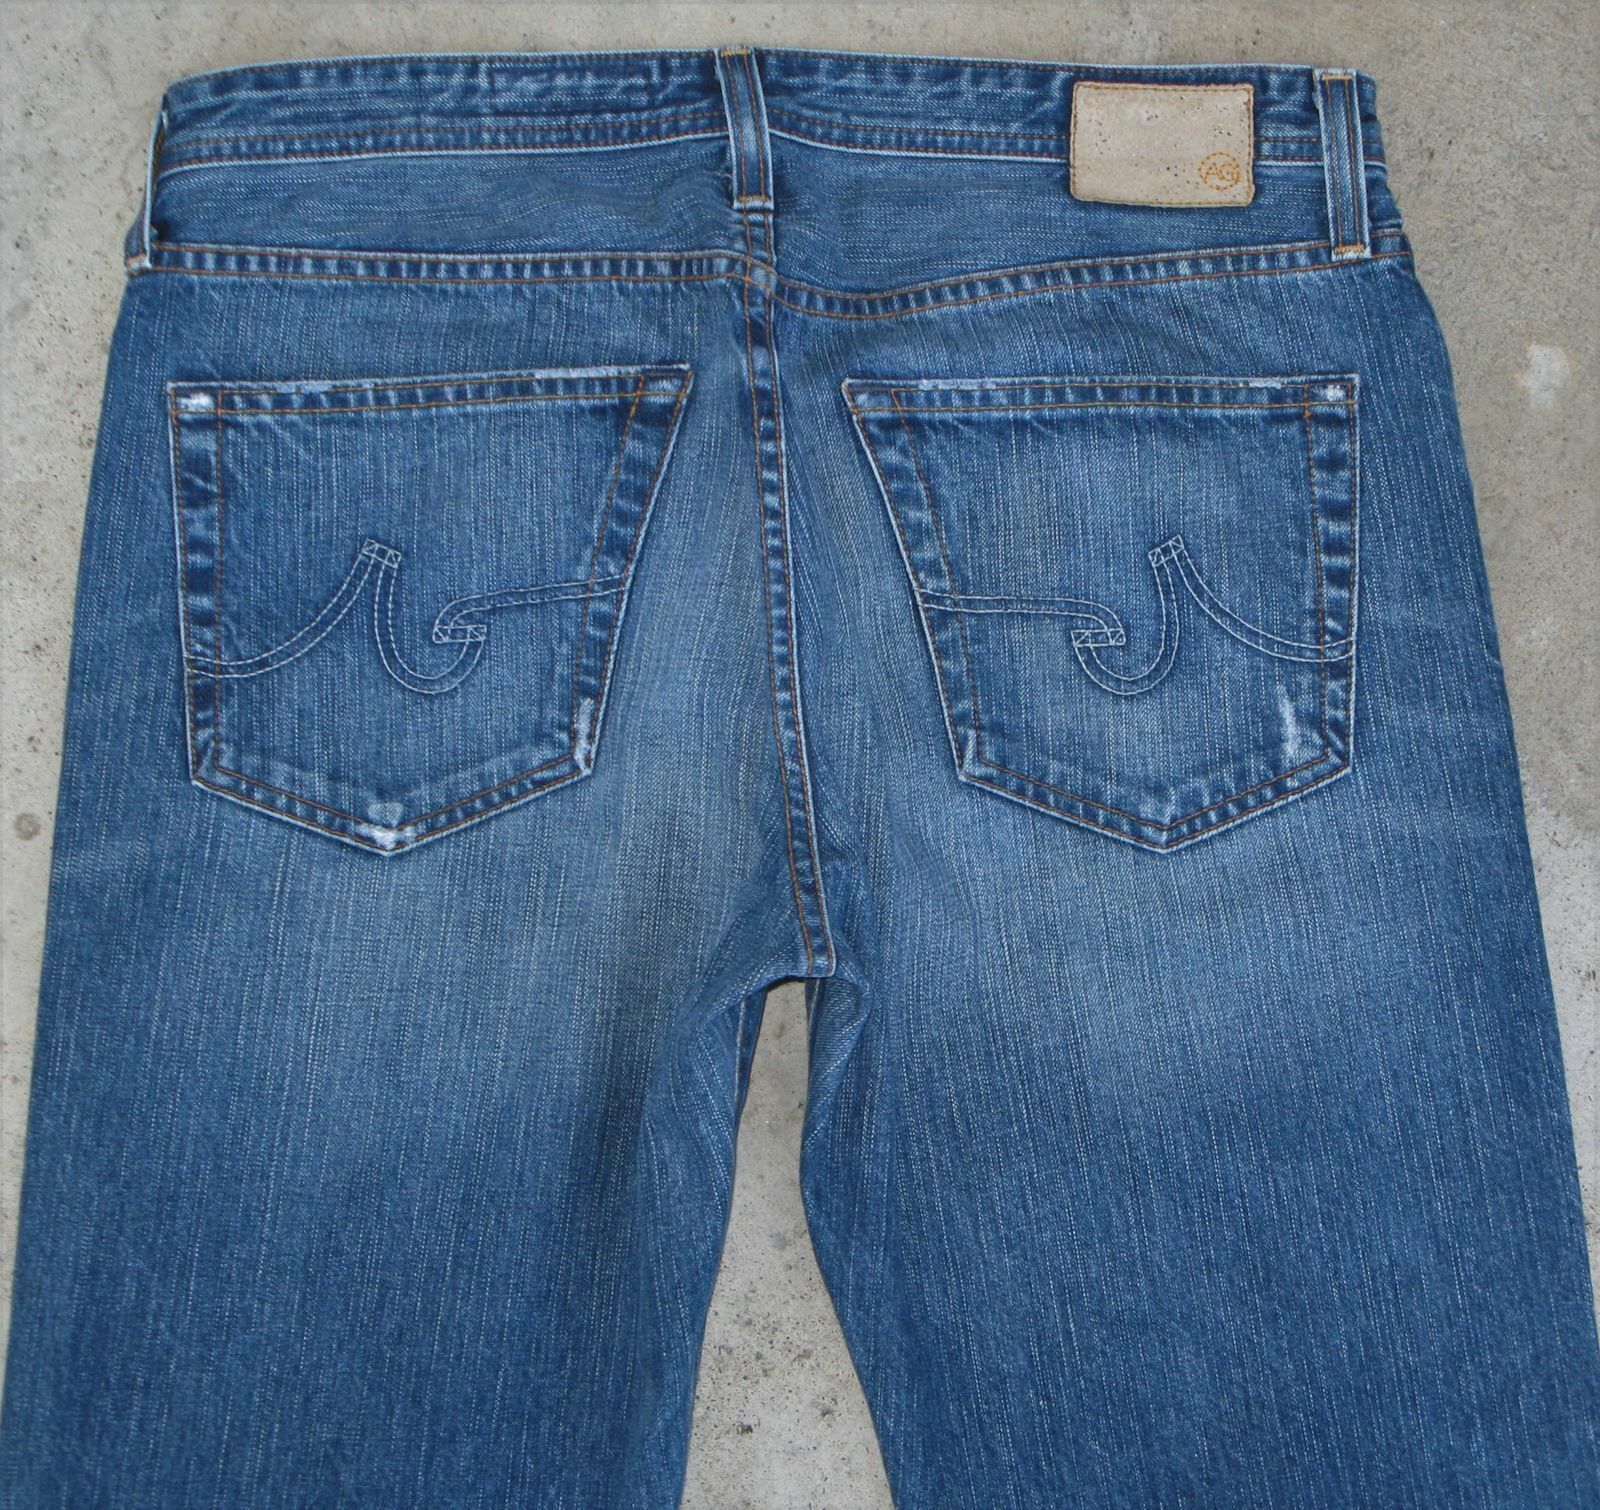 AG ADRIANO goldSCHMIED Predege Jeans Mens Sz 33 X 31 Straight Leg Distressed